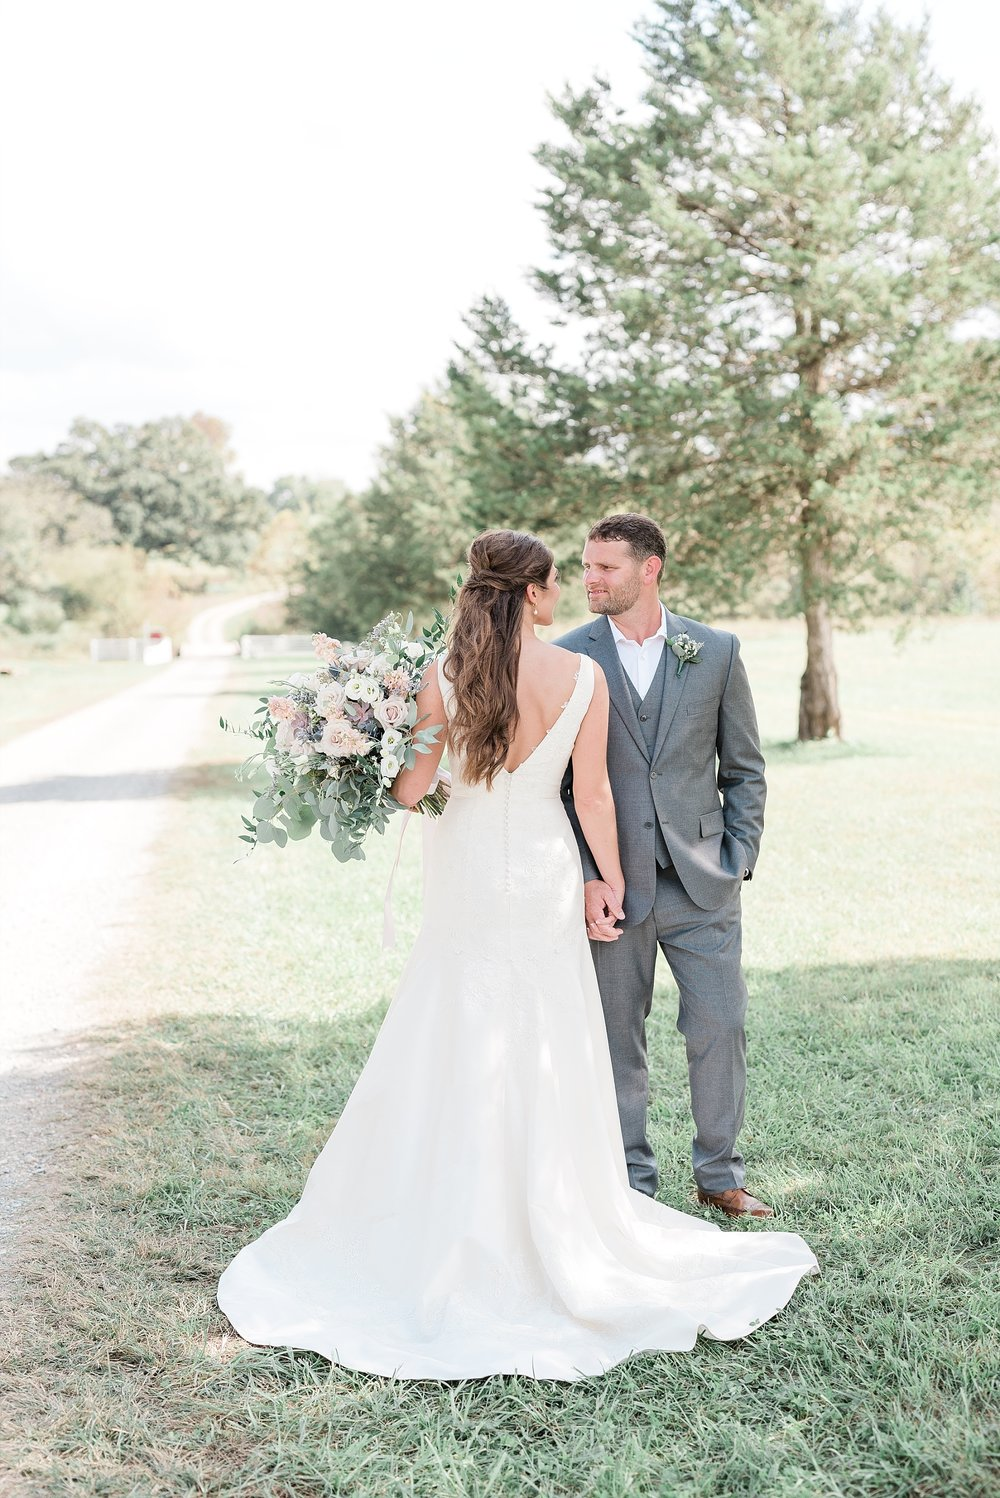 Fine Art Sunset Themed Wedding in Autumn at Dodson Orchards by Kelsi Kliethermes Photography_0050.jpg